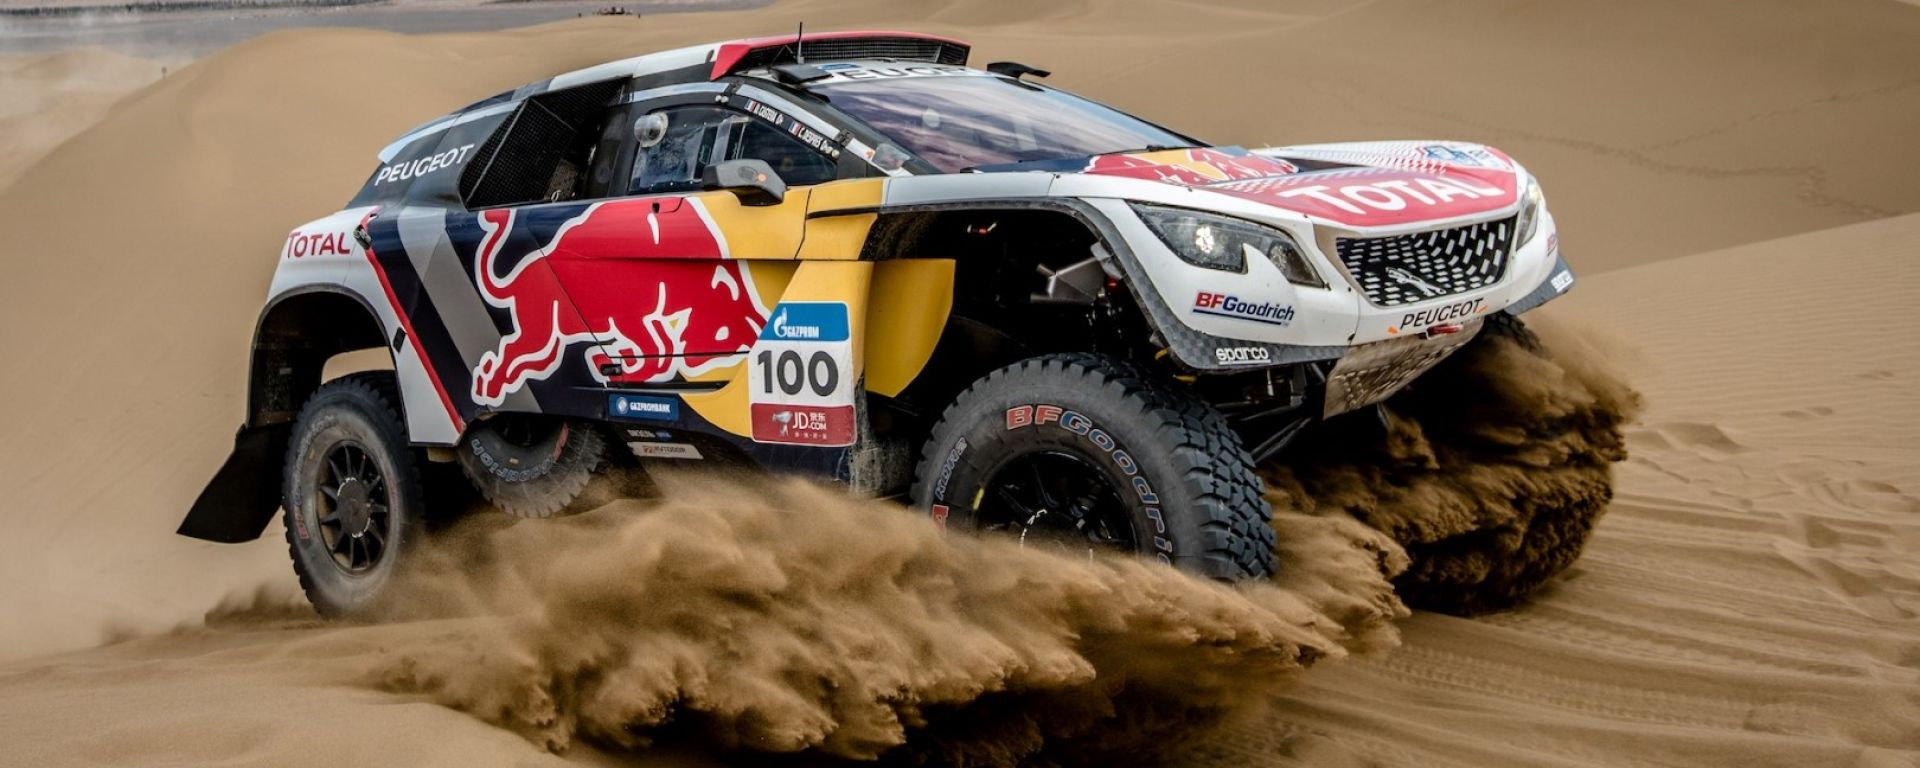 Peugeot 3008 DKR Maxi - Silk Way Rally 2017, Giorno 9